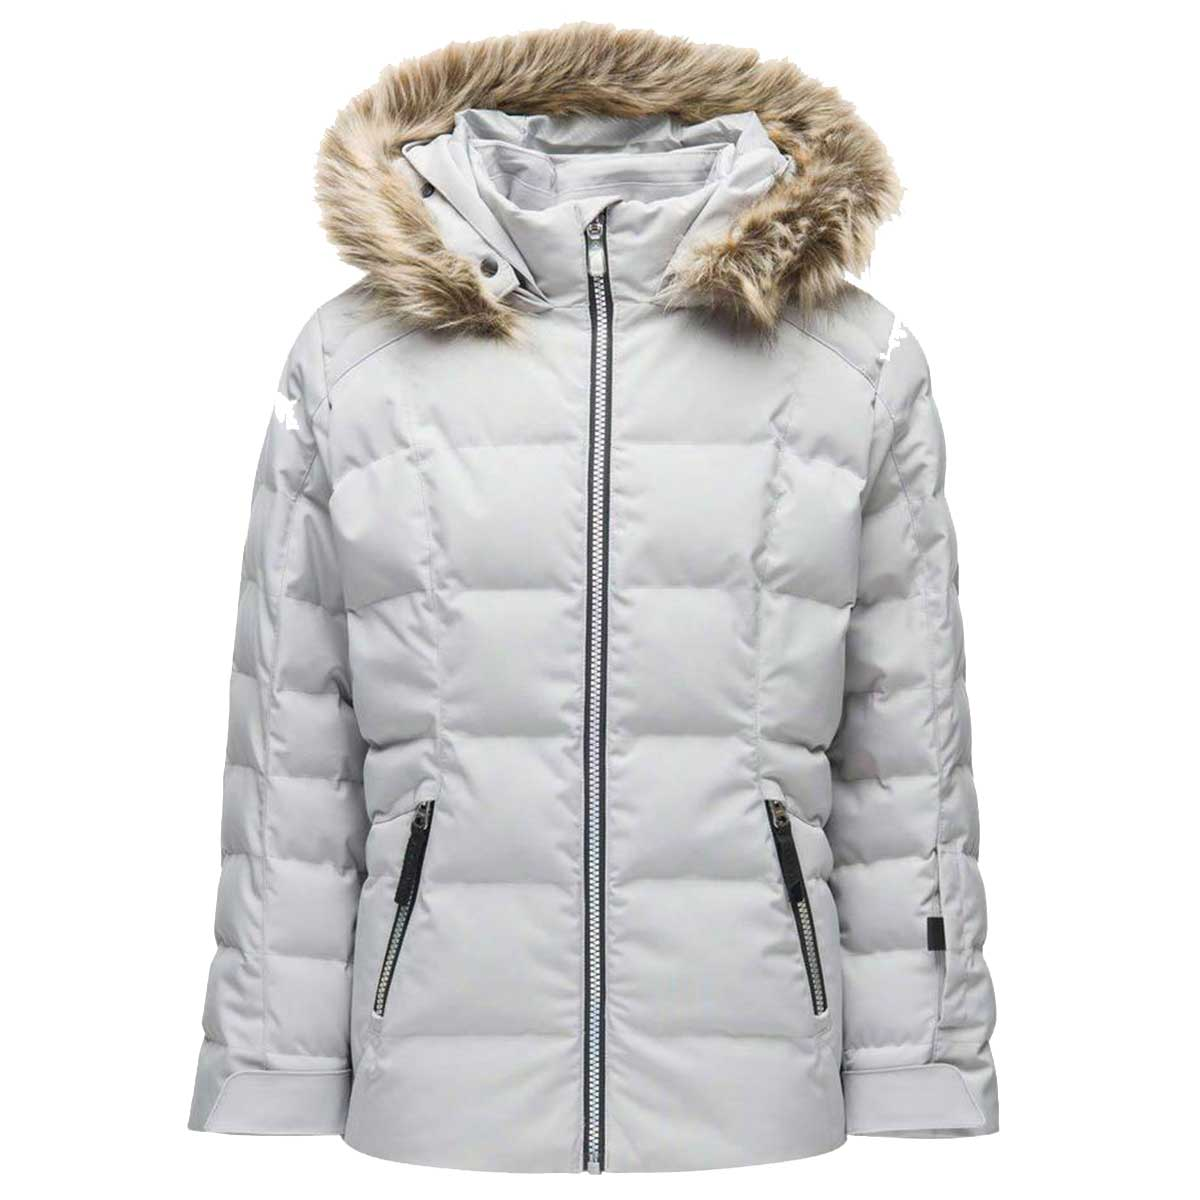 Spyder Girls' Atlas Synthetic Down Jacket in Silver front view